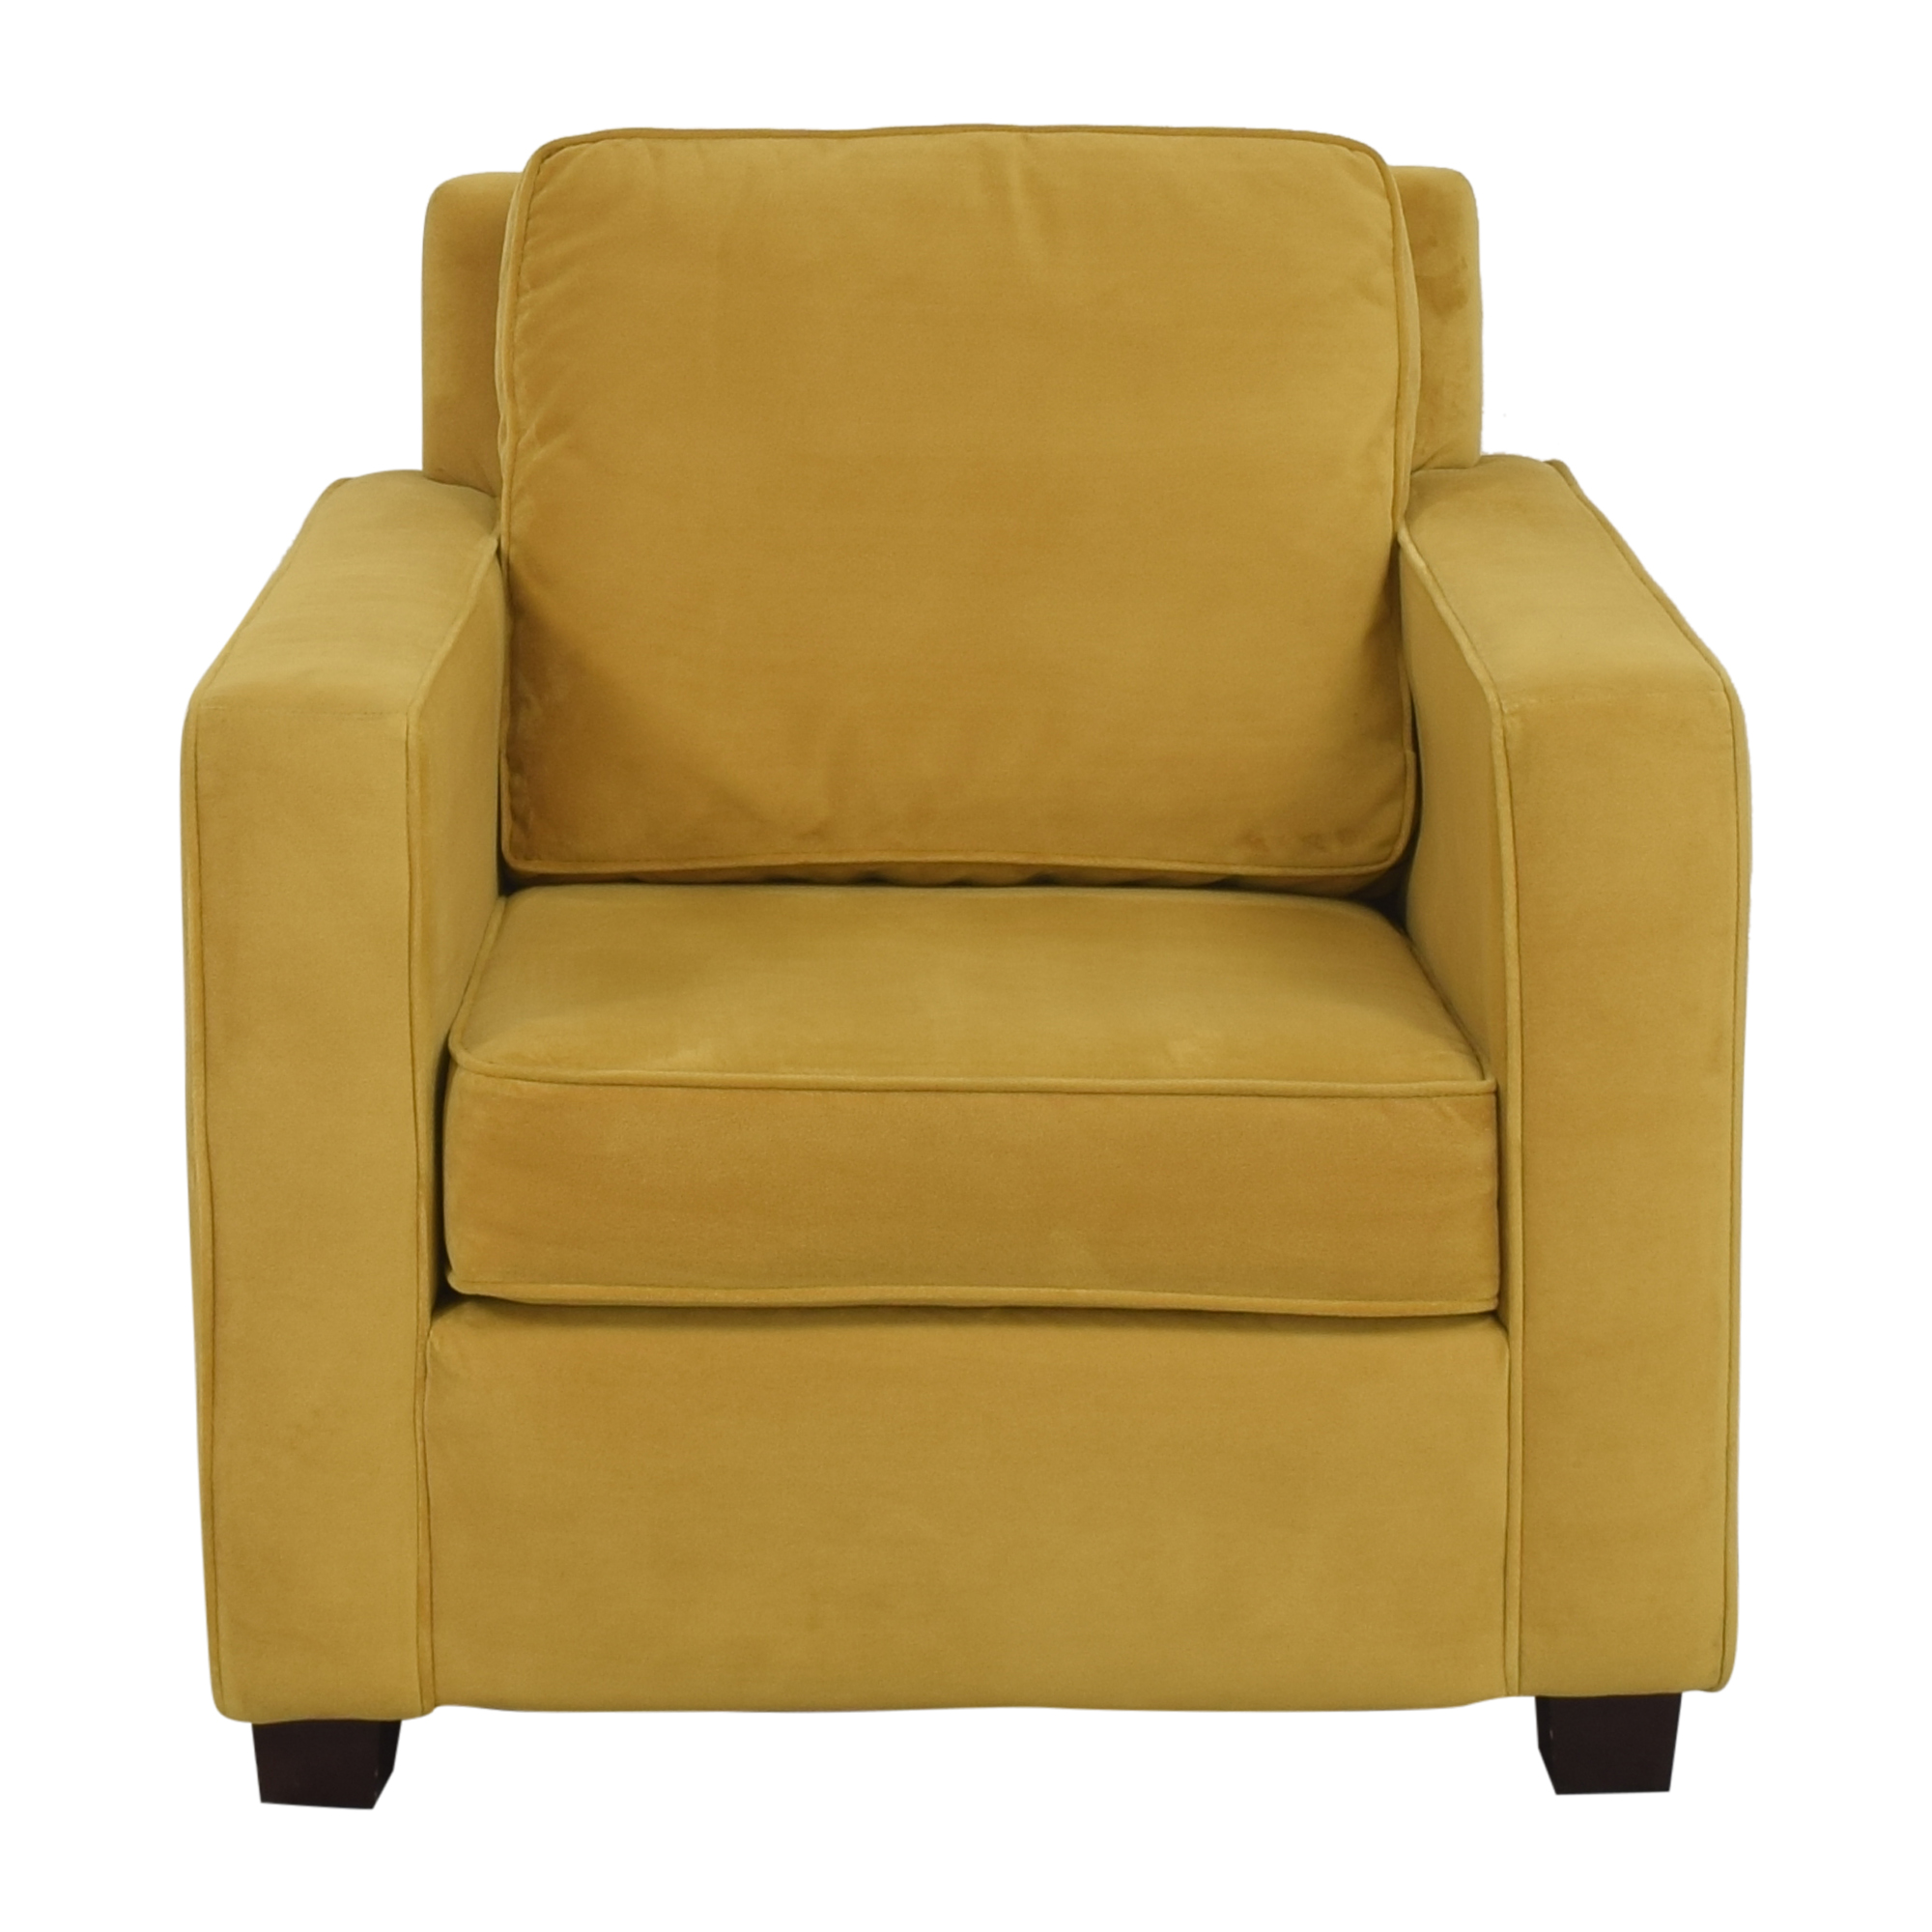 West Elm West Elm Henry Armchair with Ottoman coupon